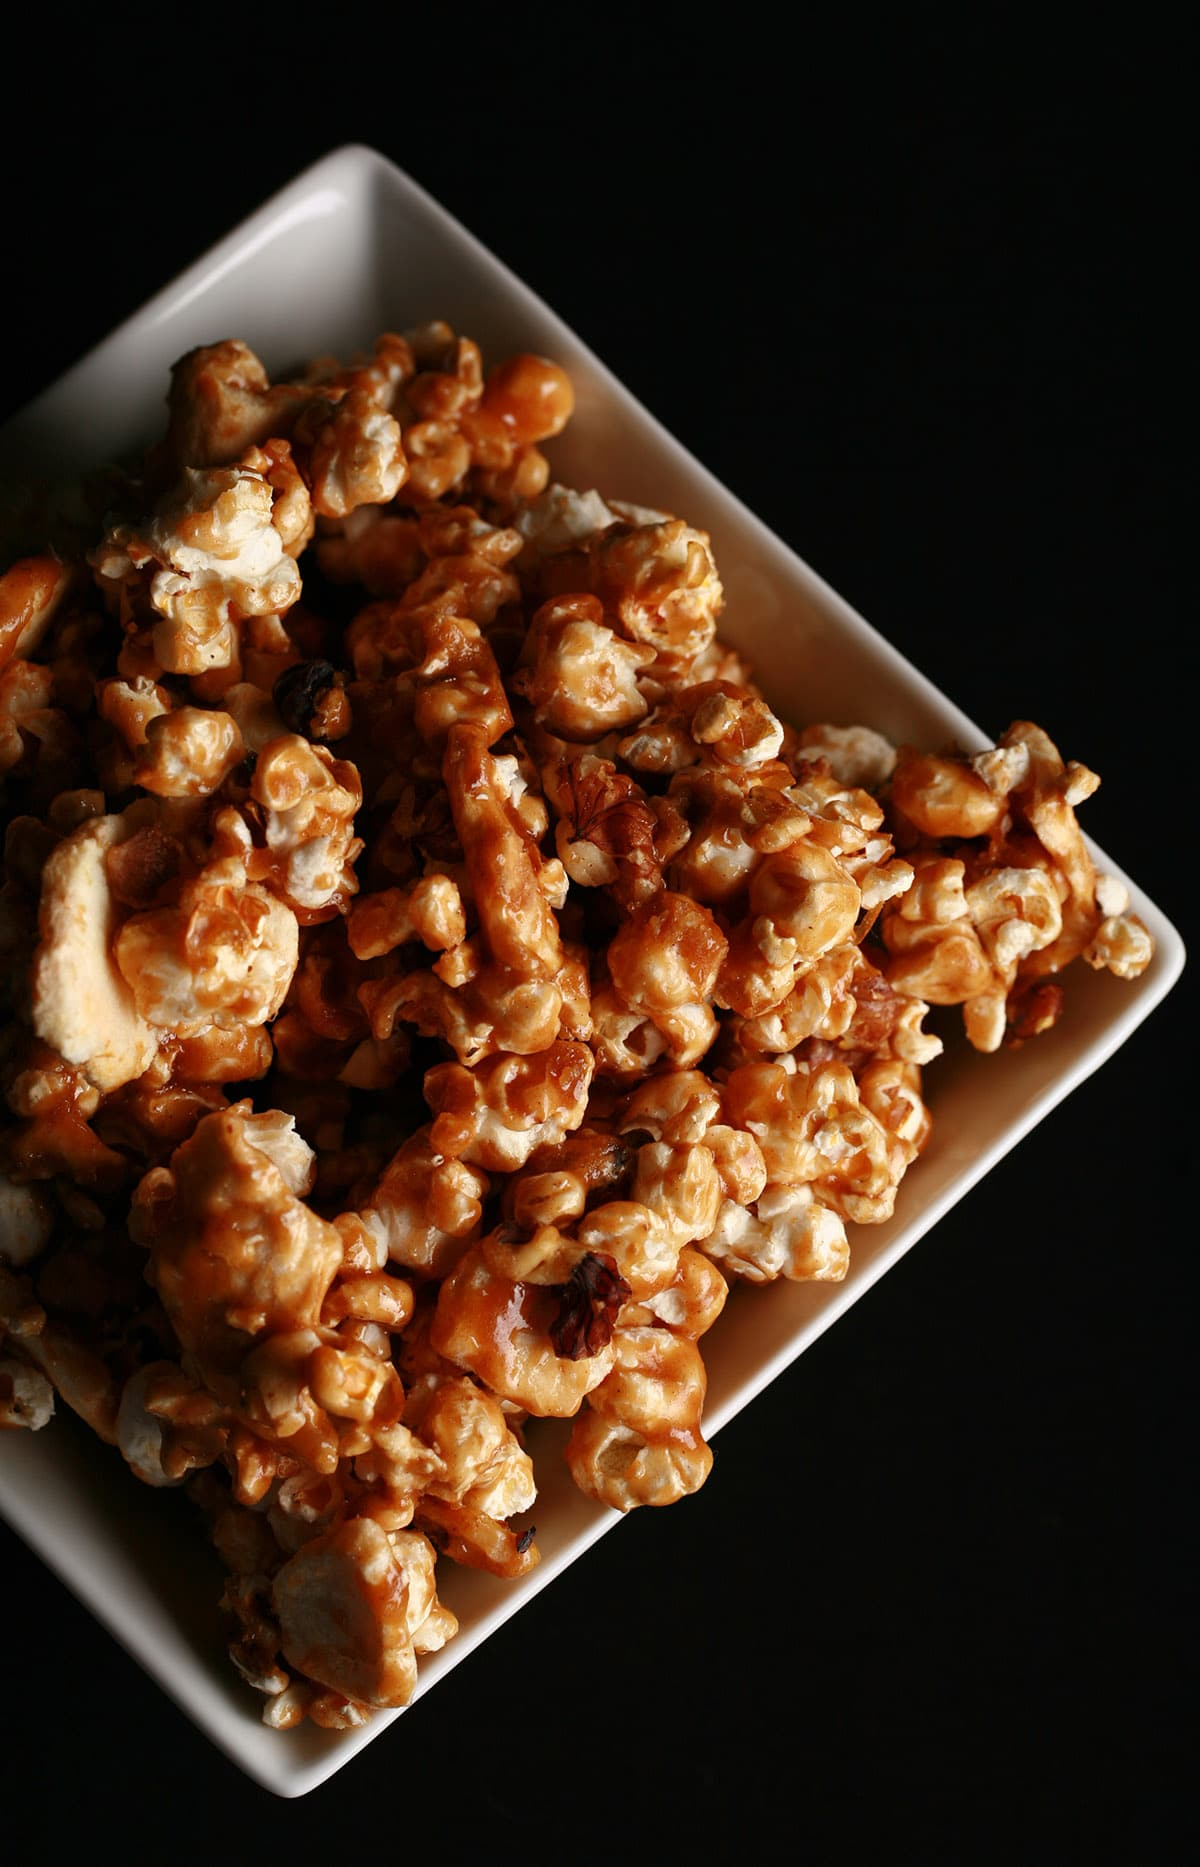 A close up view of a bowl of apple cinnamon caramel popcorn.